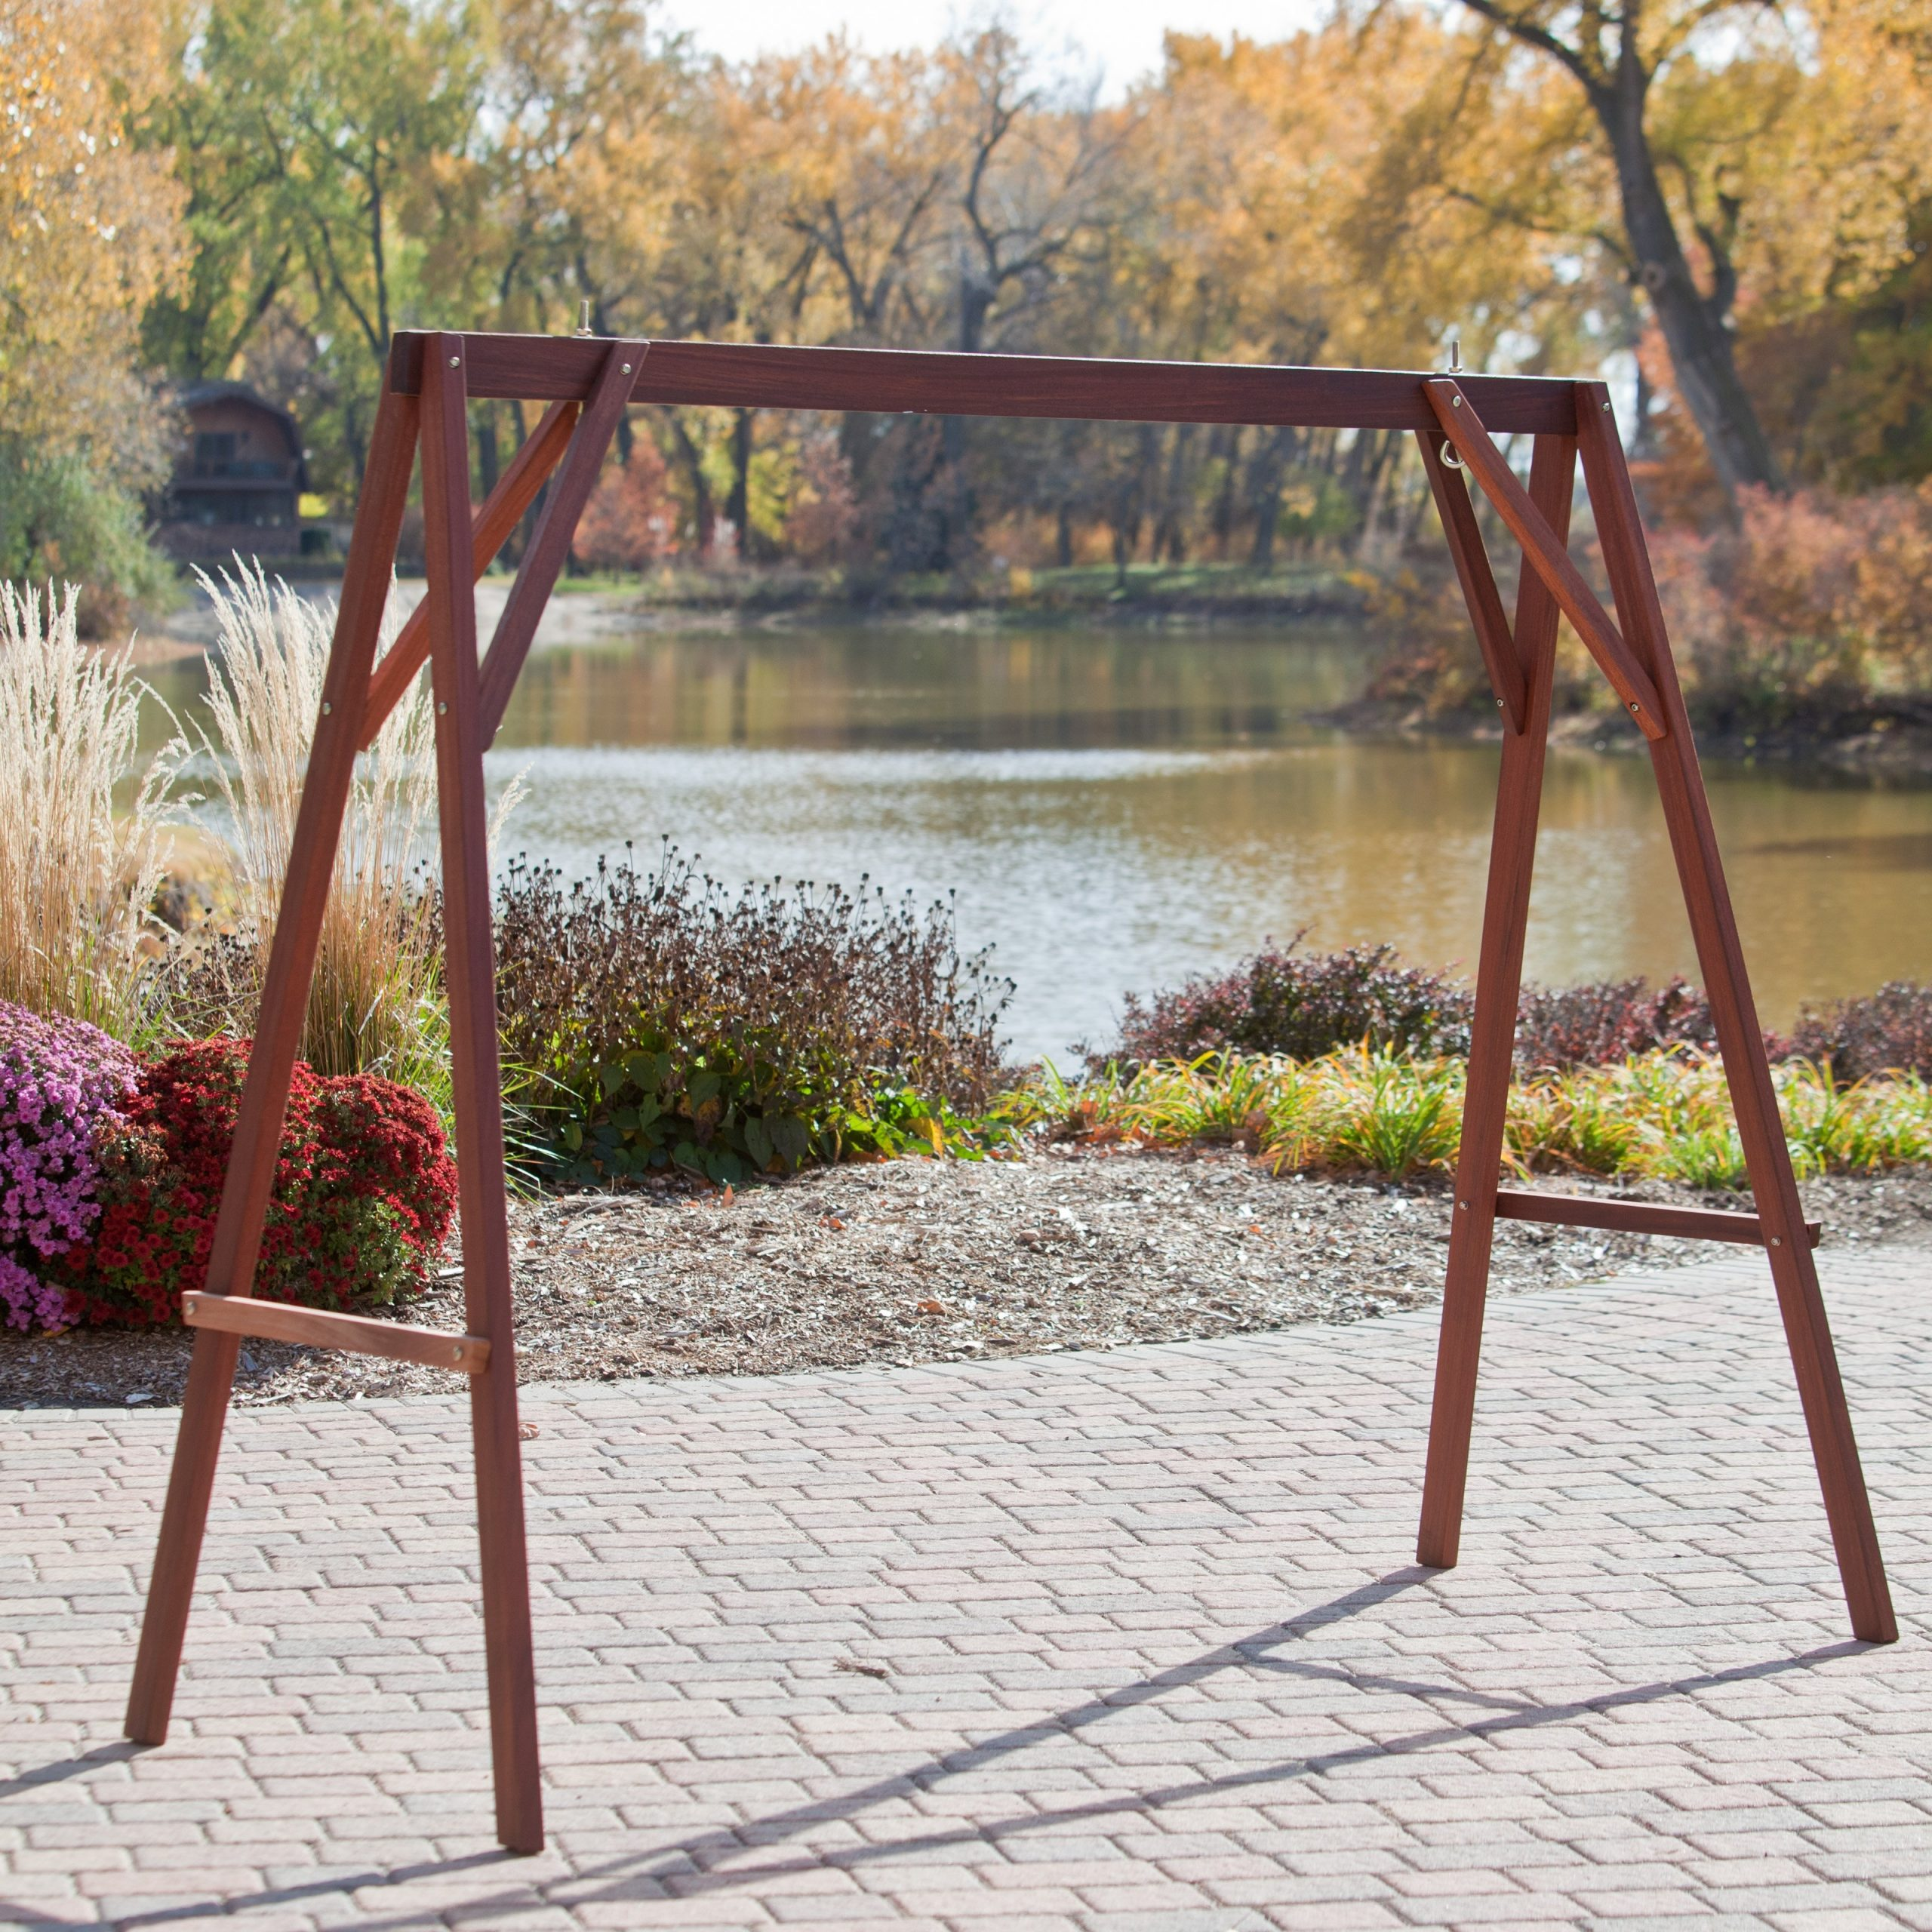 Metal Porch Swings With Stands Throughout Patio Porch Swings With Stand (View 11 of 25)